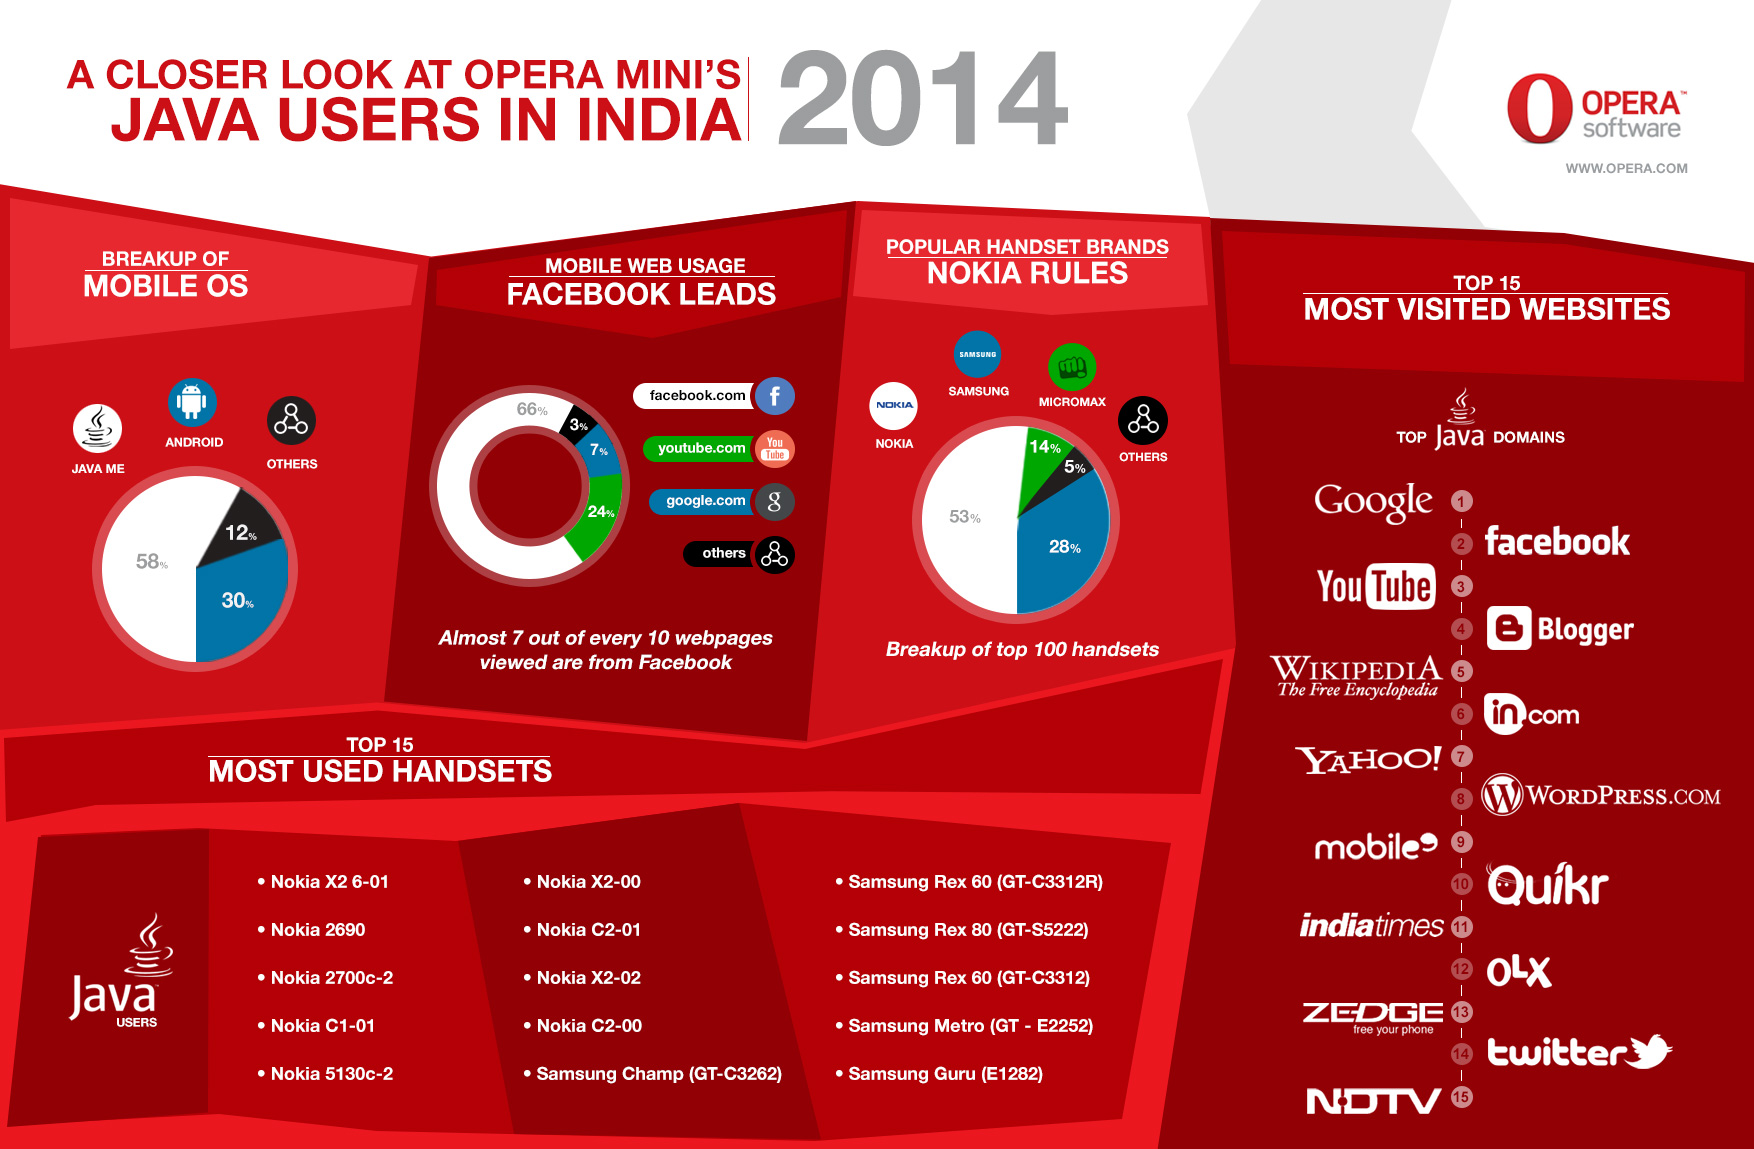 Opera Mini's Java users in India